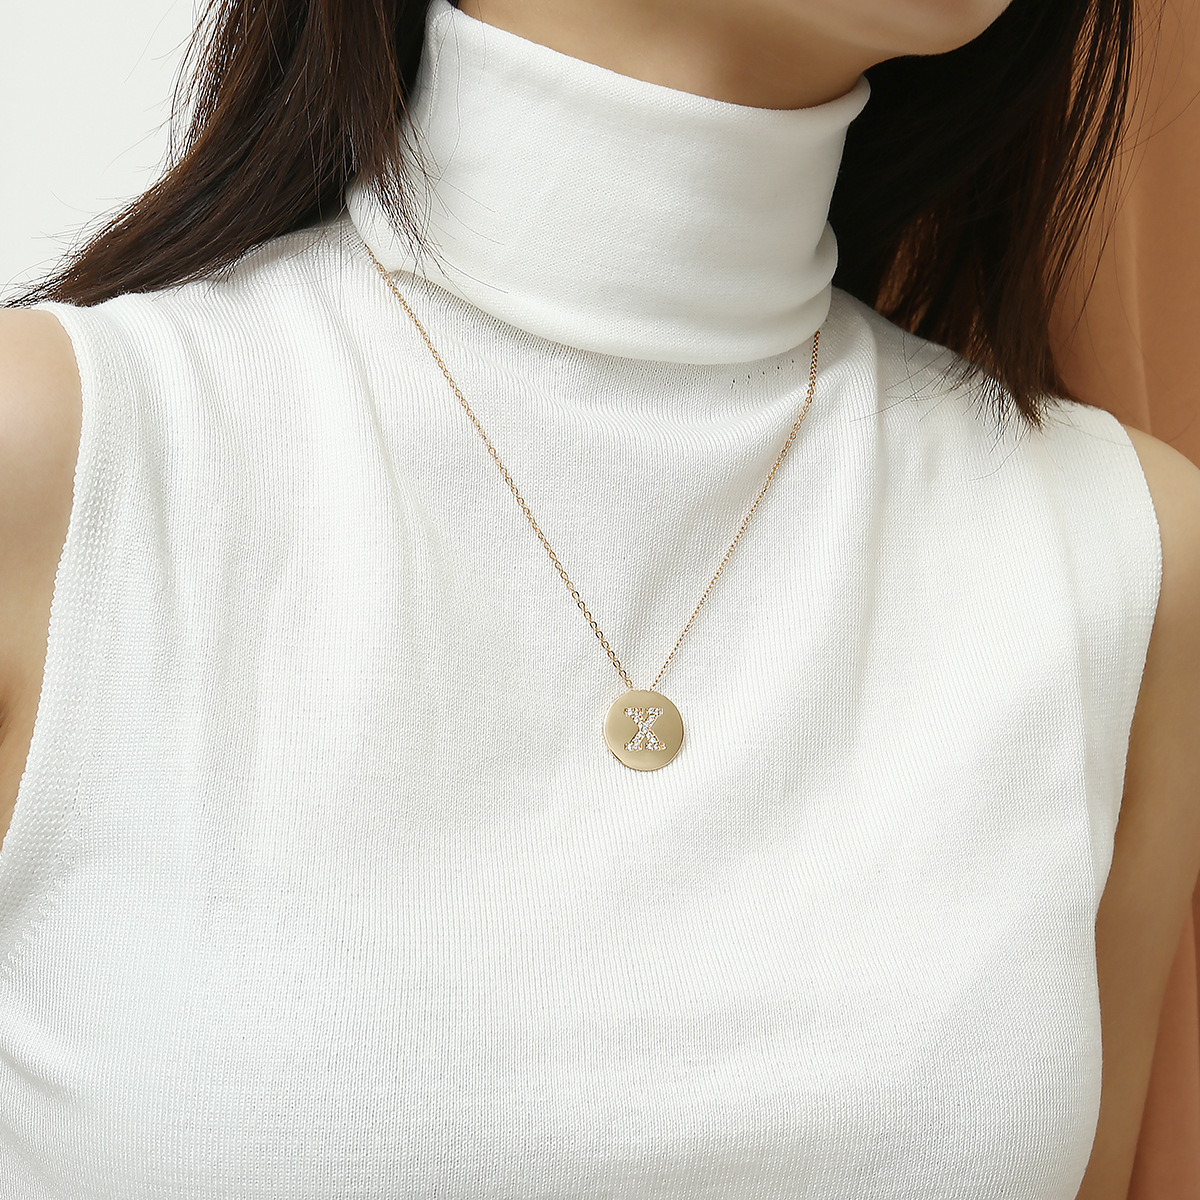 Glamour 18K Gold-Plated Pendant Necklace Female Personality 26 Letter Inlaid Shiny Zircon Round Single Gold Chain Necklace